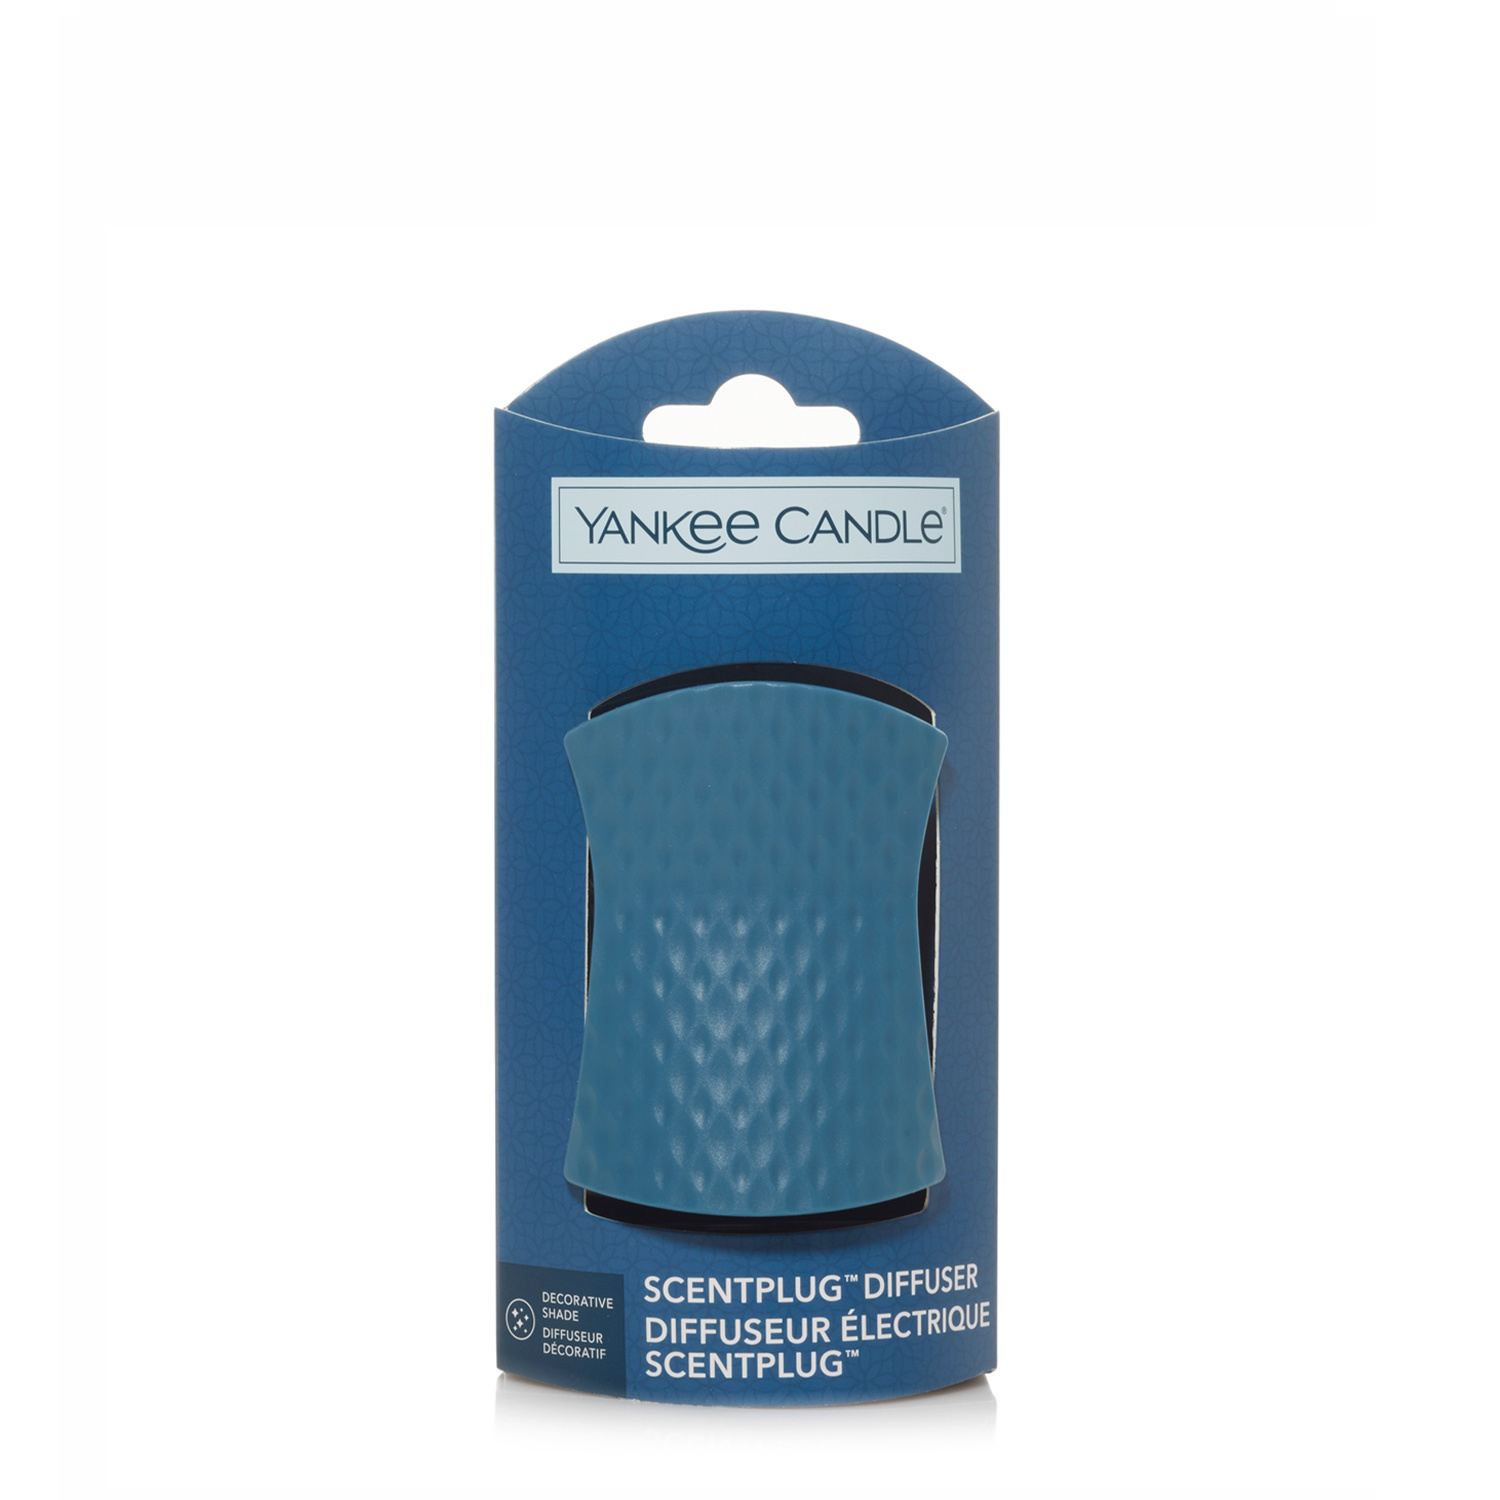 Yankee Candle - Blue Curves Scentplug Diffuser